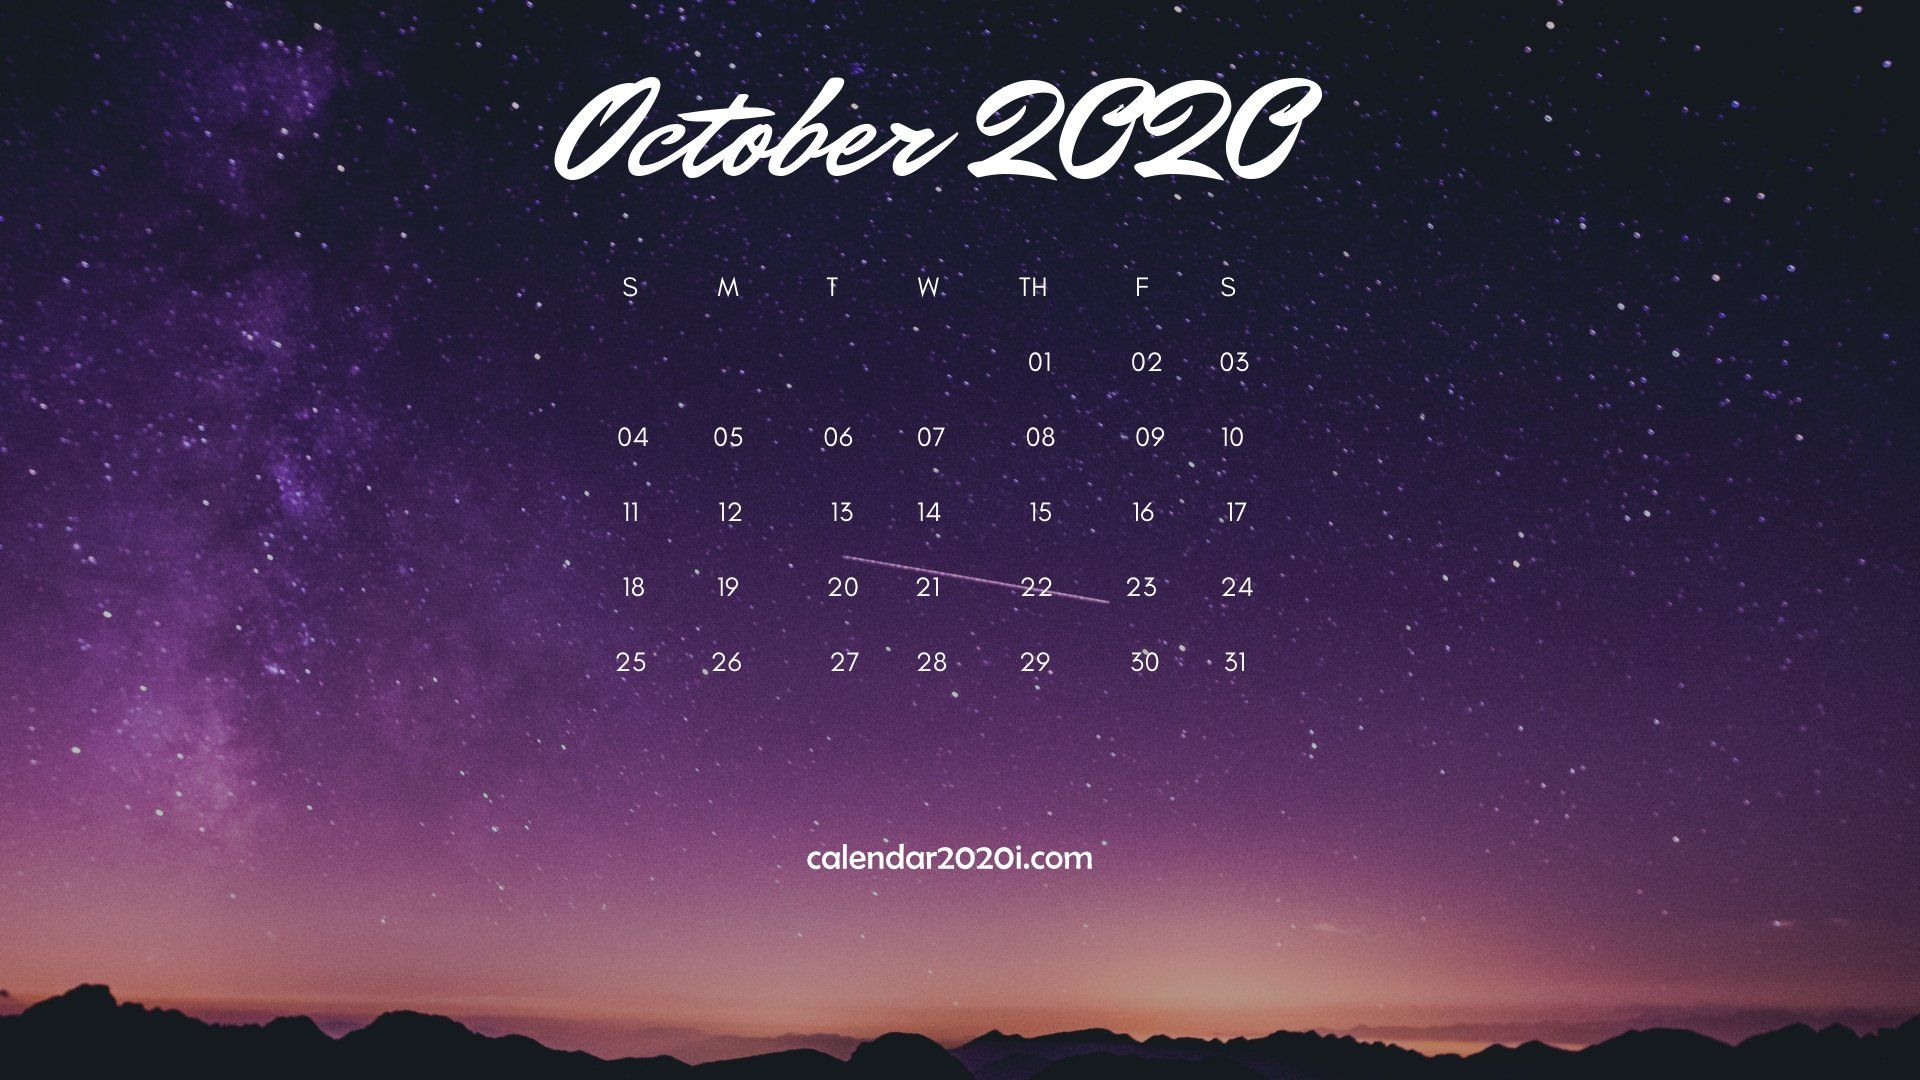 October 2020 Calendar Wallpapers   Top October 2020 Calendar 1920x1080